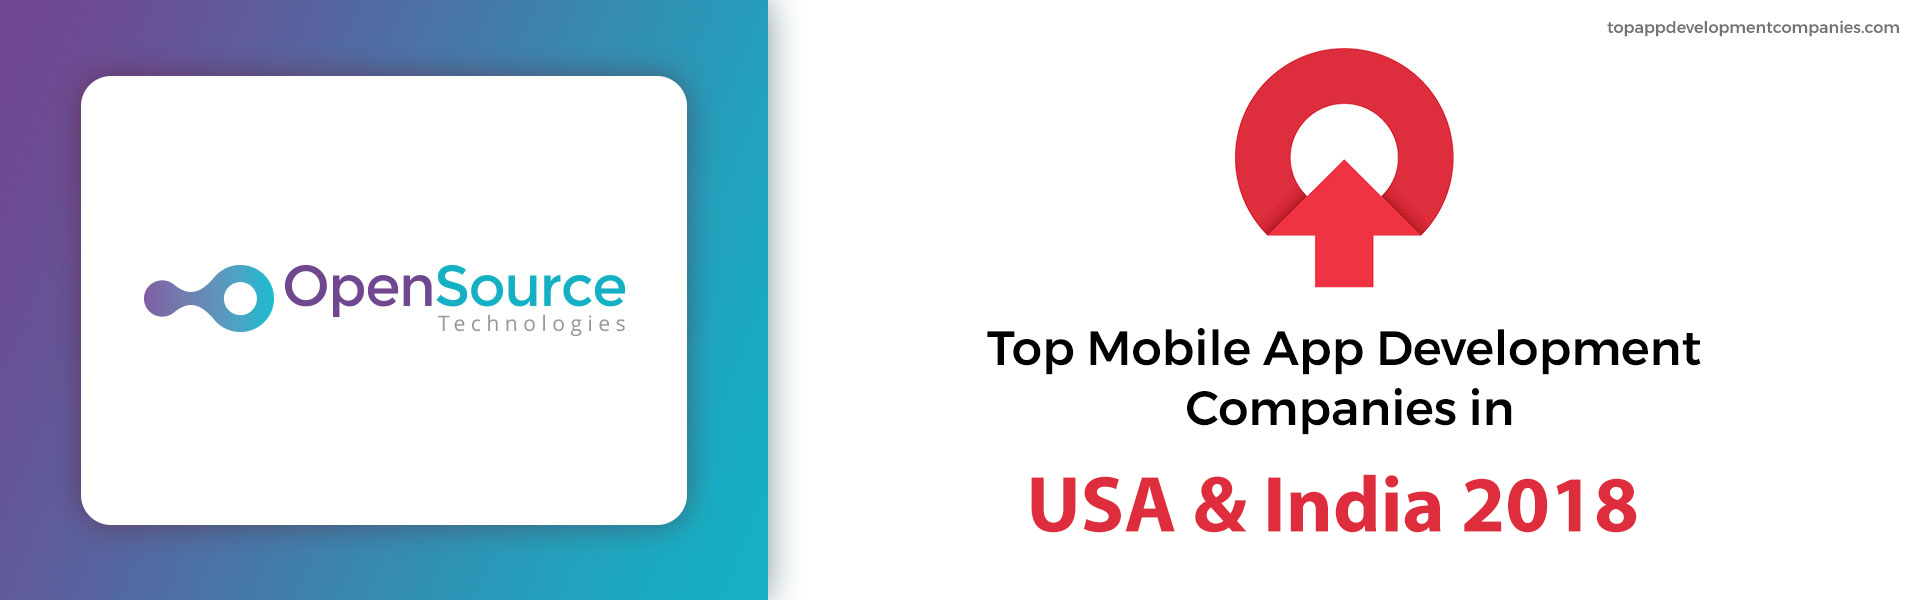 Top 10 Mobile App Development Companies in USA & India 2018